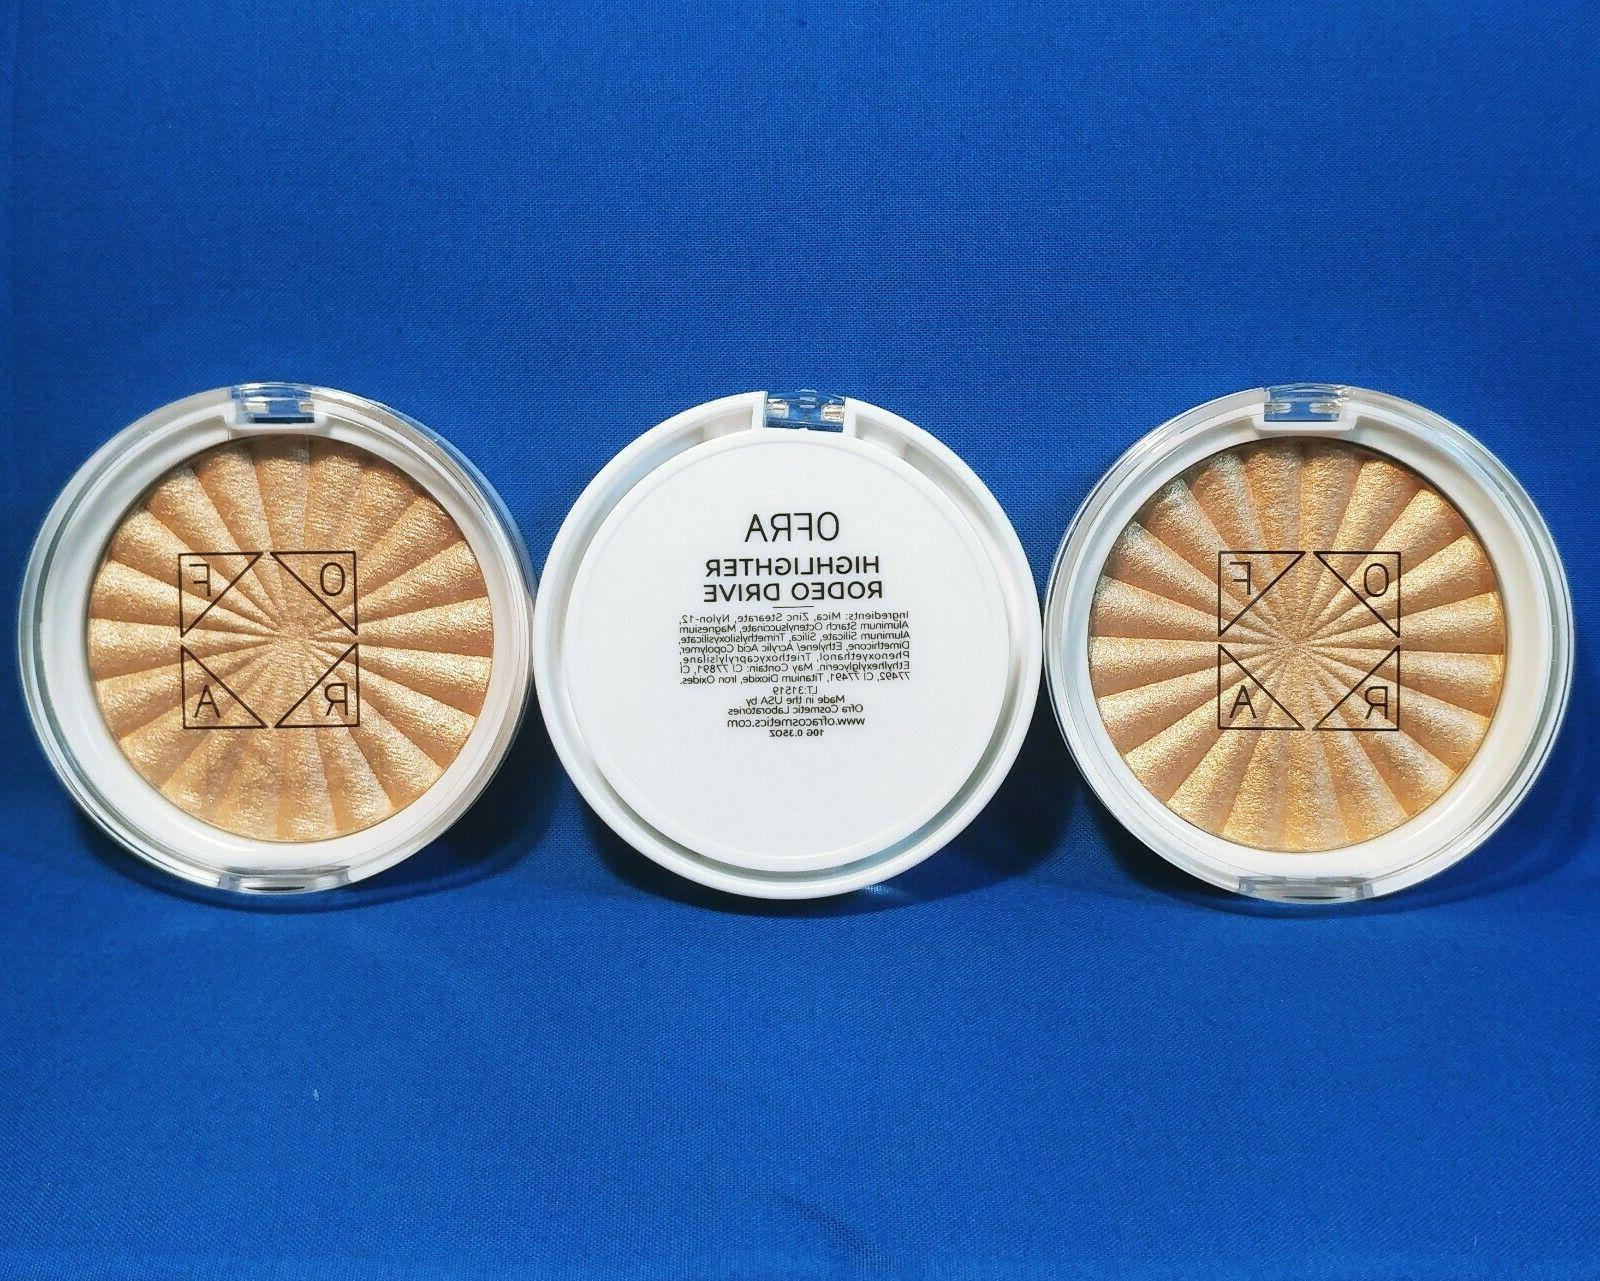 6X DRIVE HIGHLIGHTER ~ g Each SHIPS FREE~ of SIX